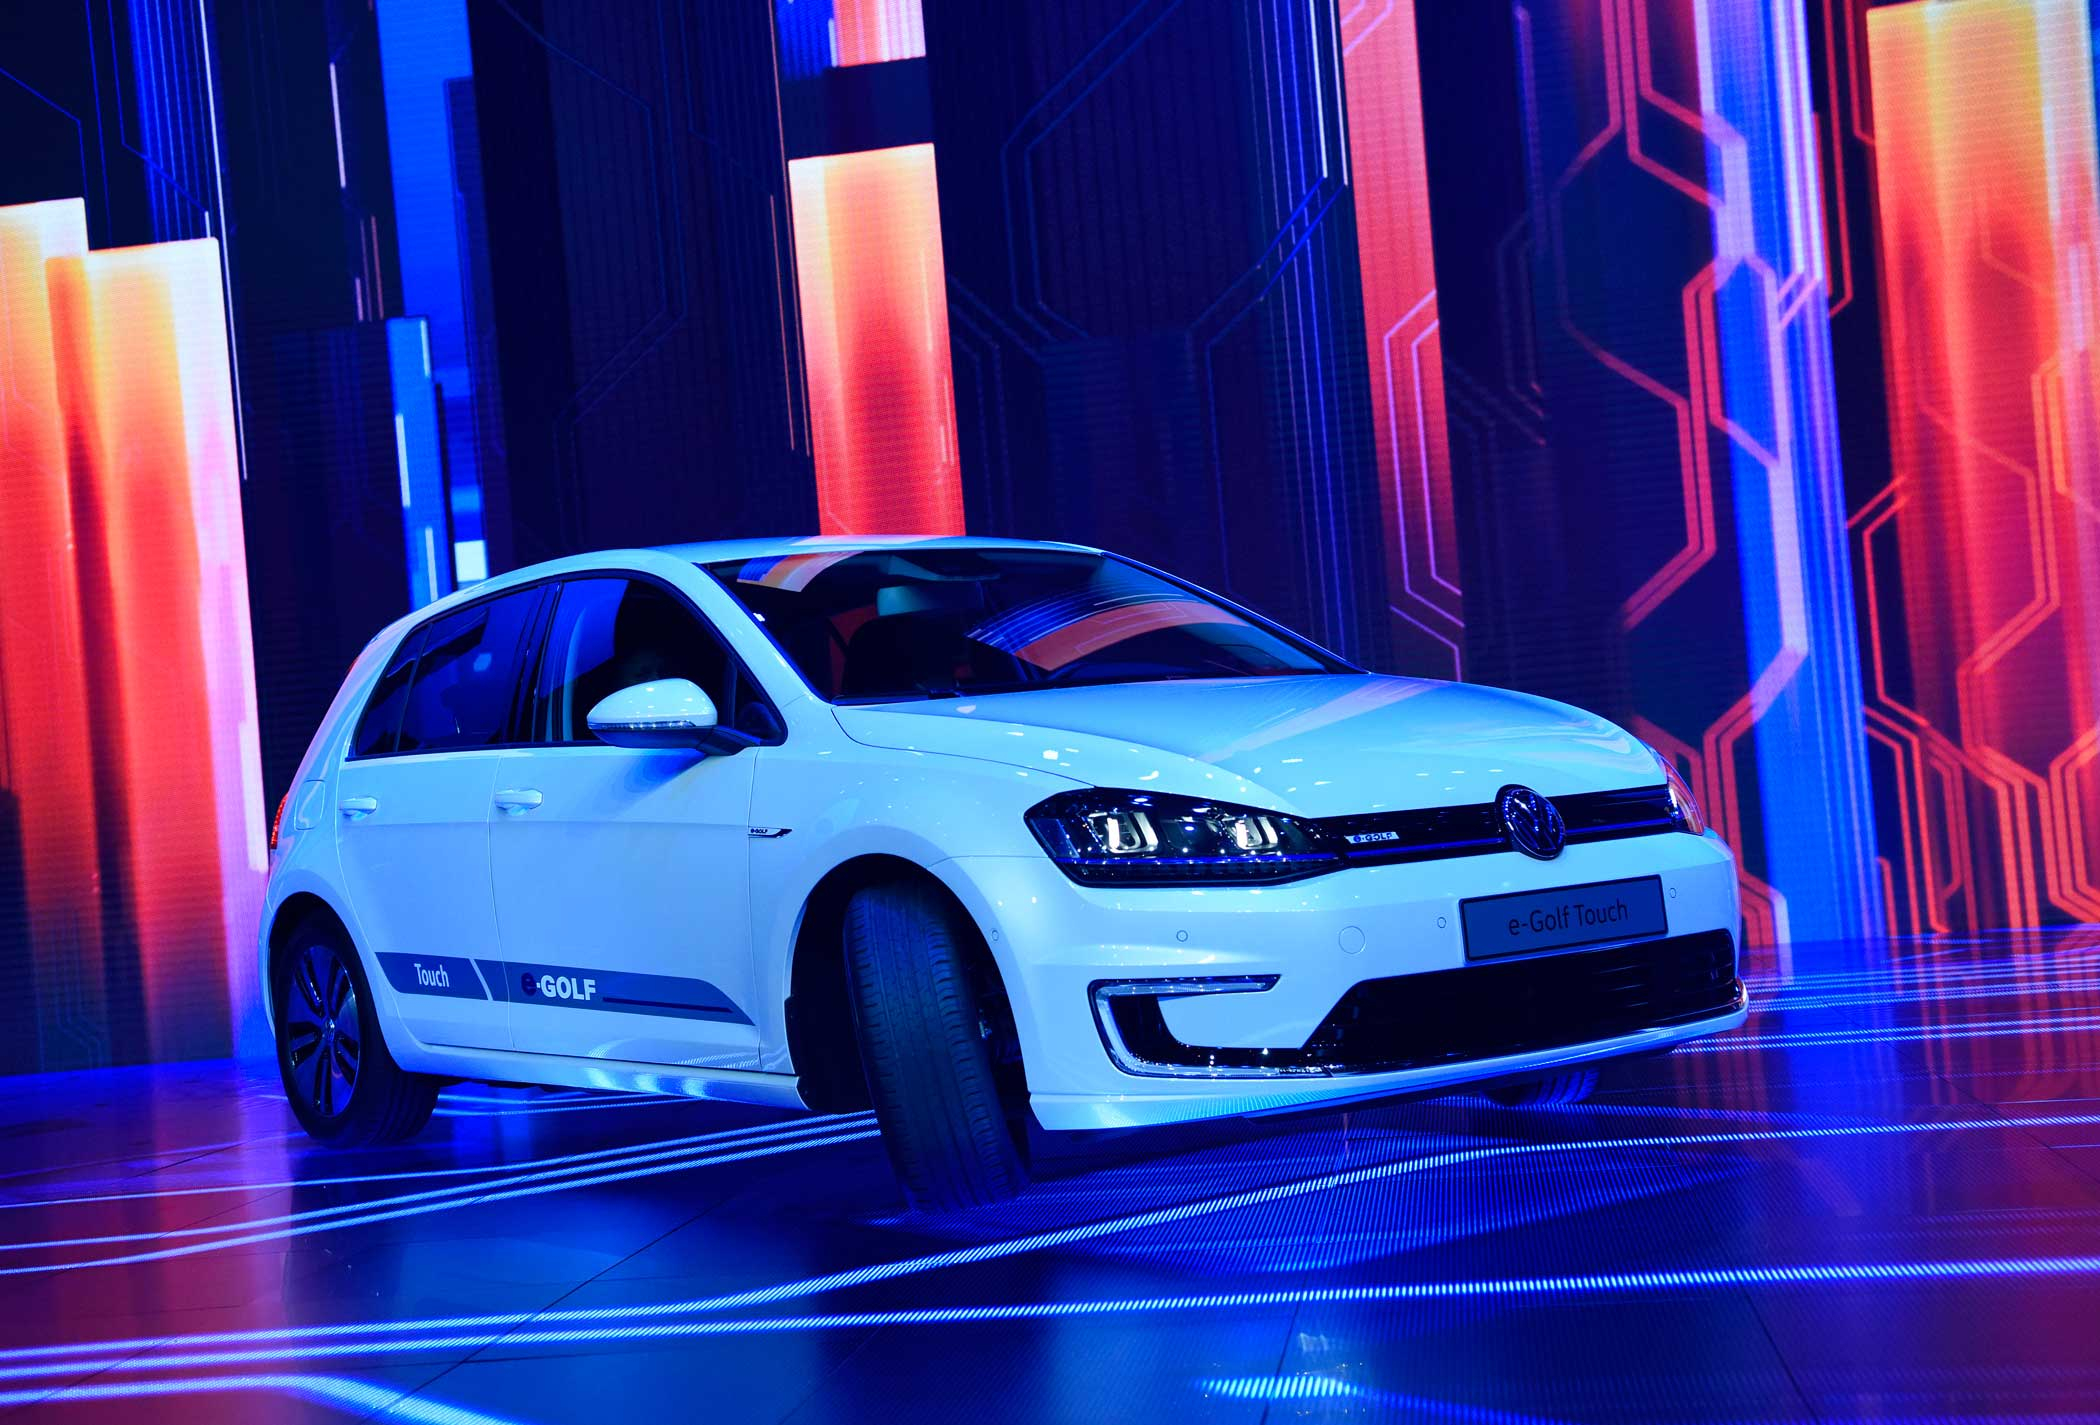 The Volkswagen AG e-Golf Touch electric vehicle .